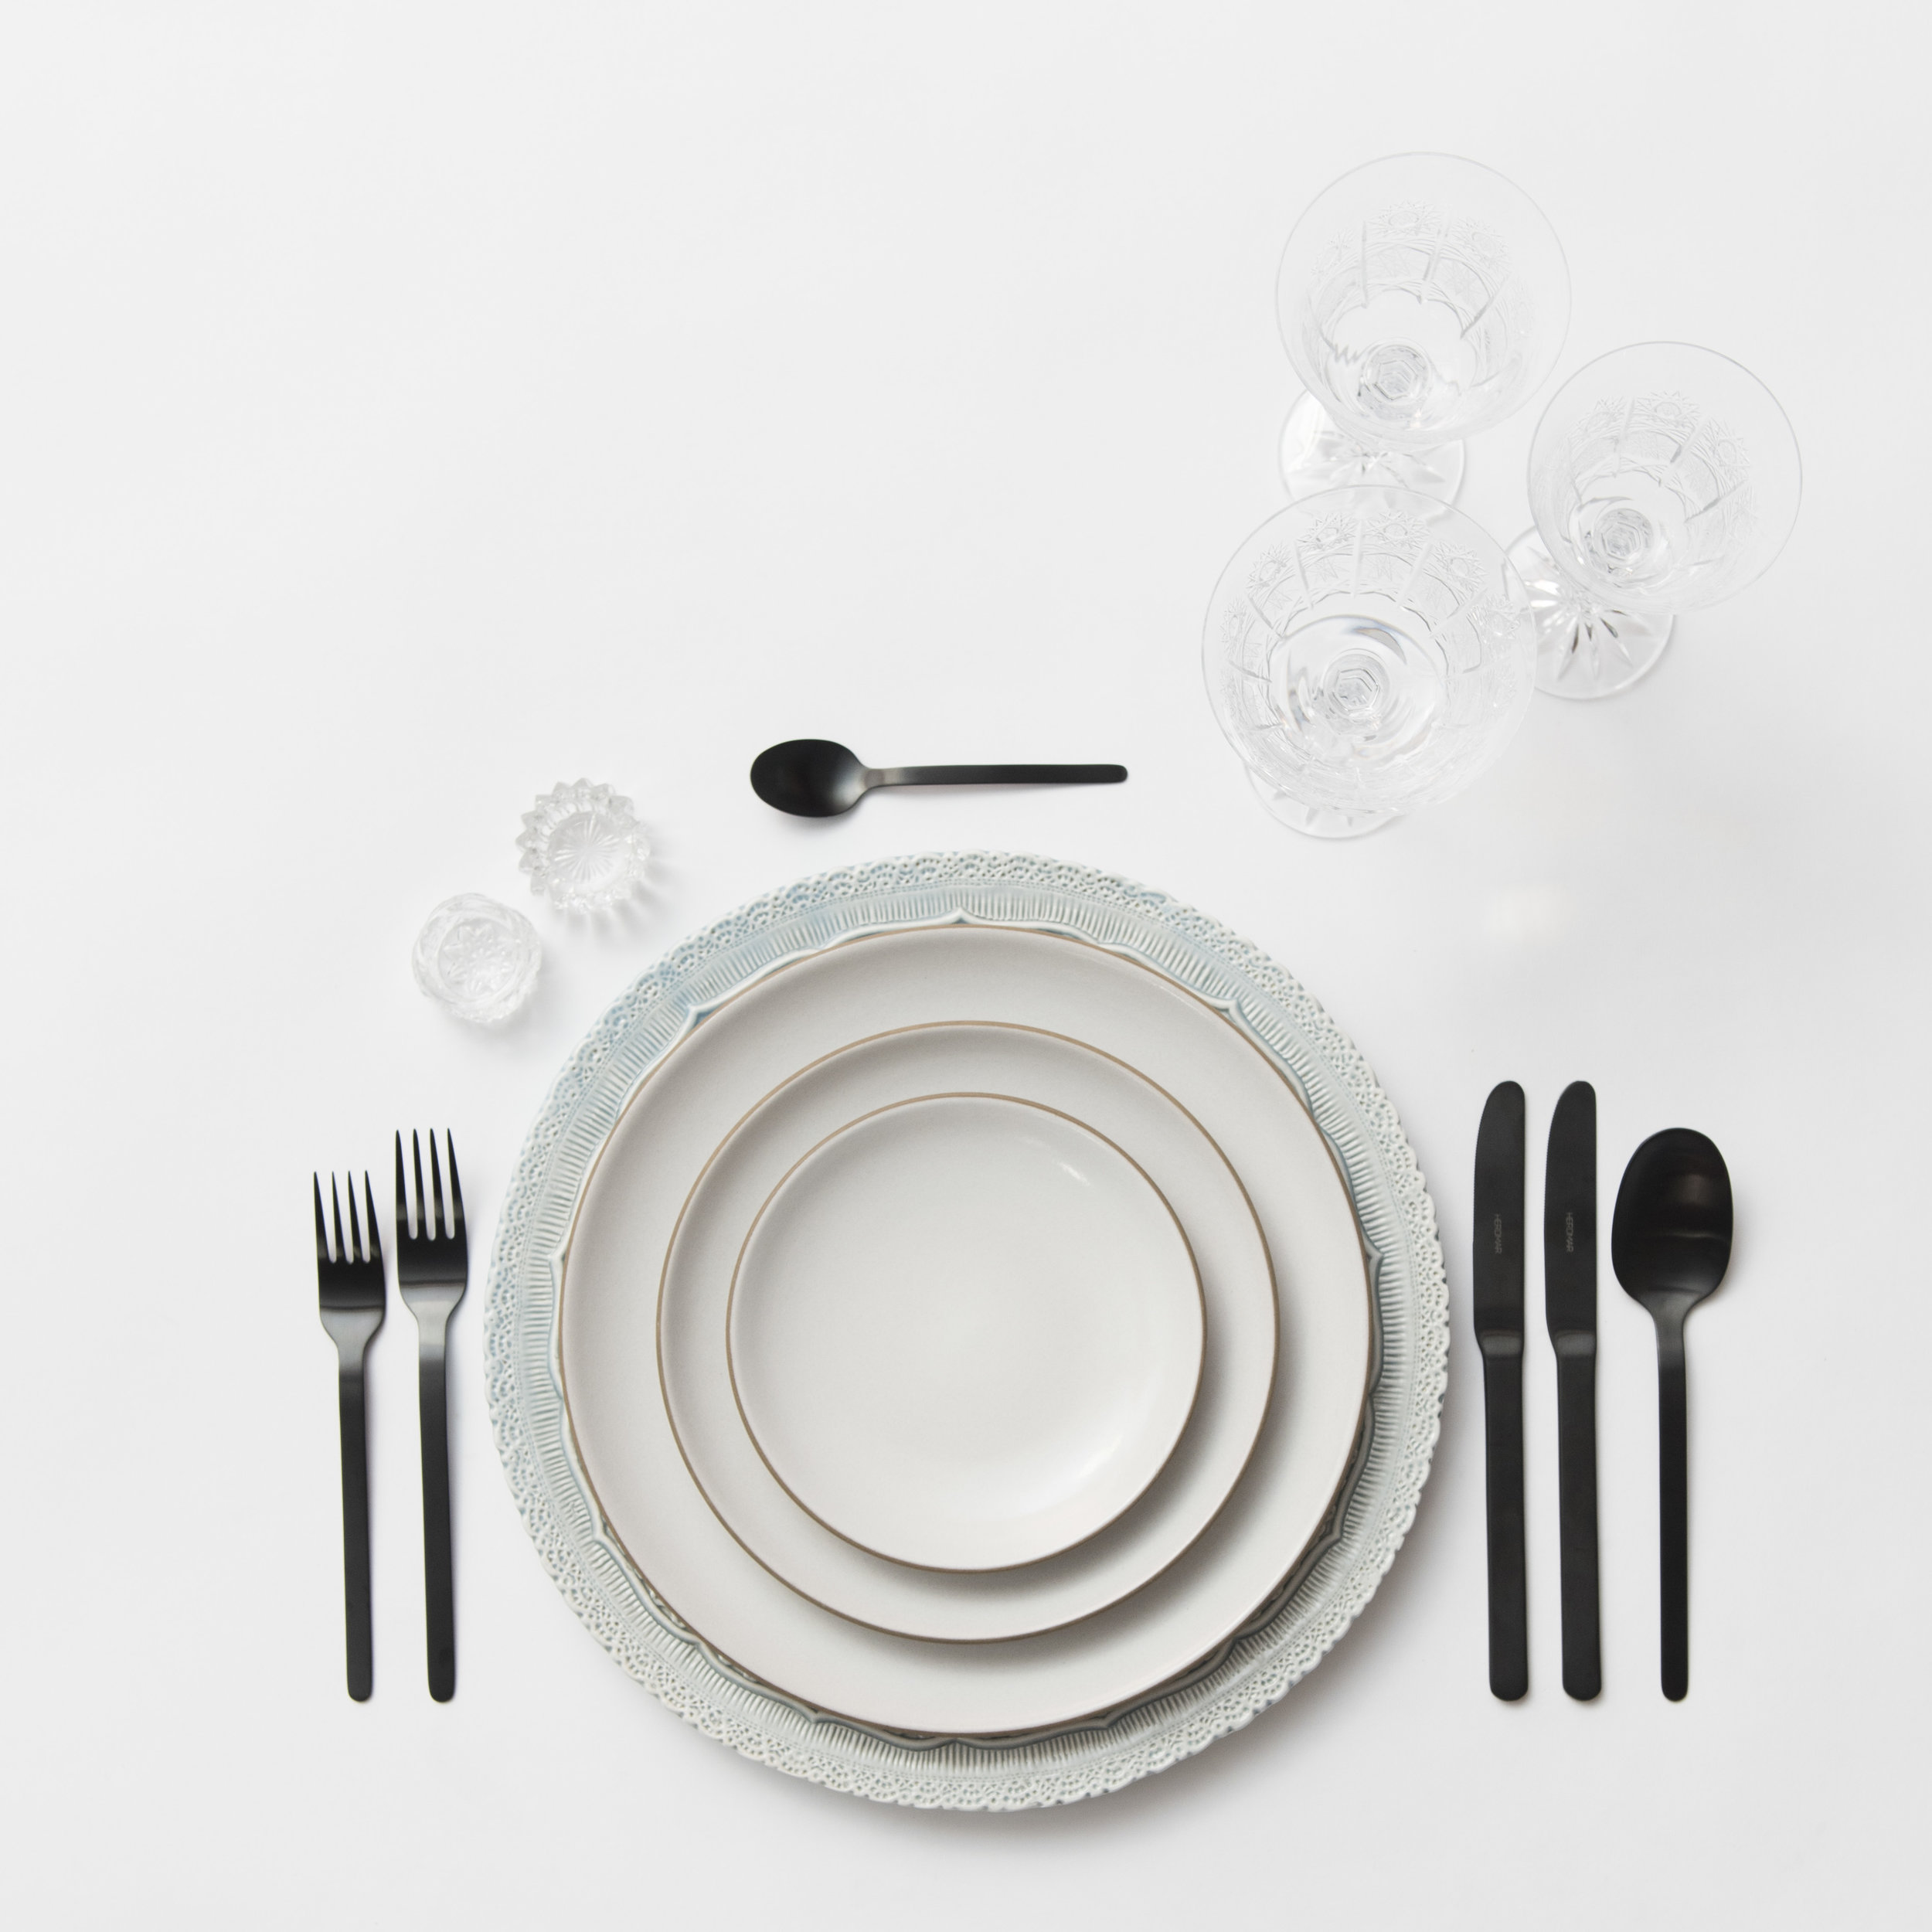 RENT: Lace Chargers in Dusty Blue + Heath Ceramics in Opaque White + Finn Flatware in Matte Black + Czech Crystal Stemware + Antique Crystal Salt Cellars